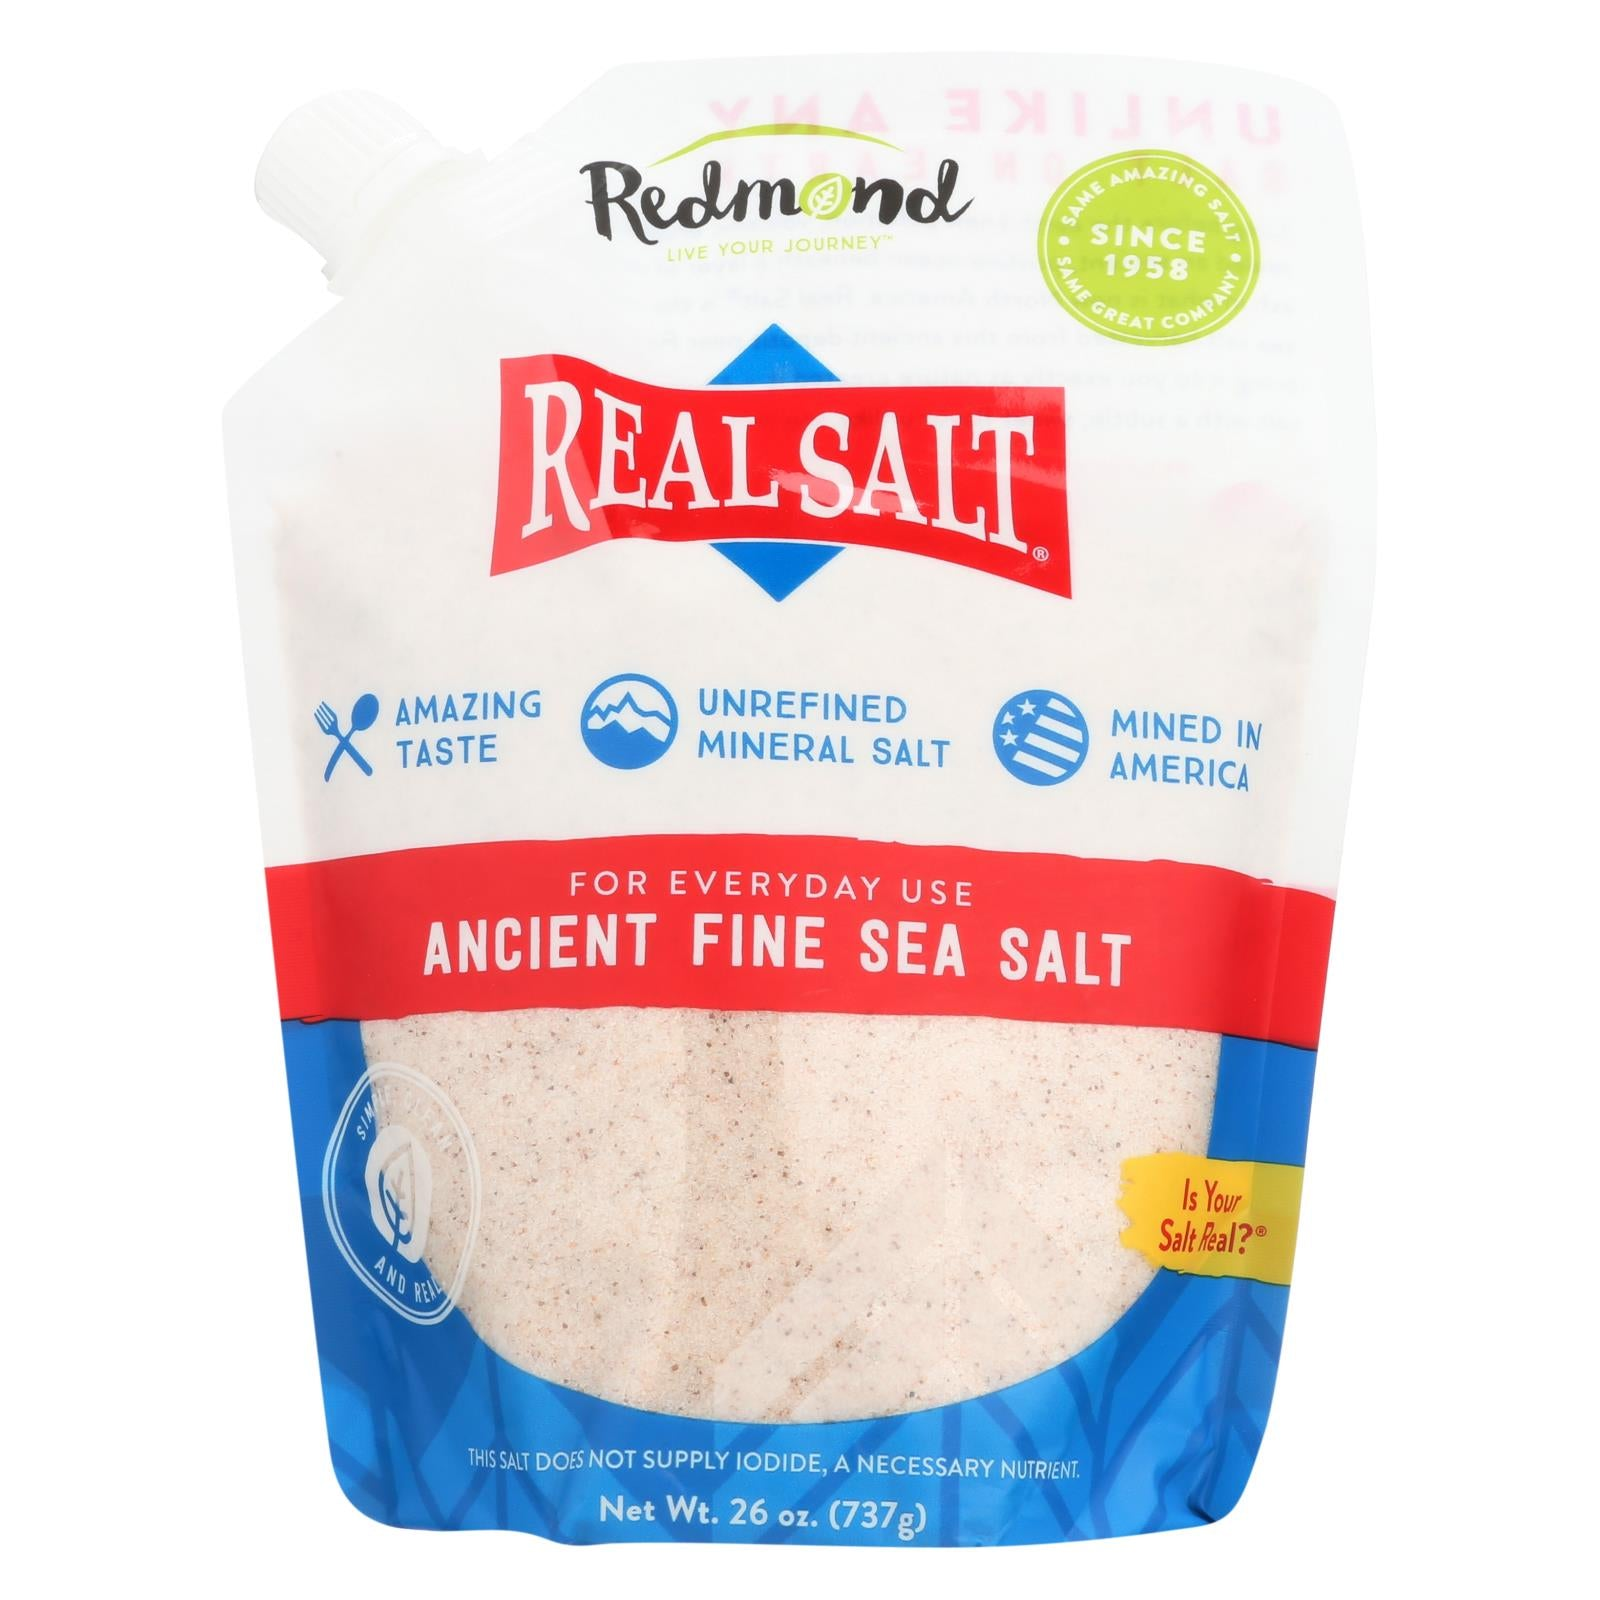 Buy Real Salt Nature's First Sea Salt Fine Salt - 26 oz - Case of 12 - Salt, Spices and Seasonings from Veroeco.com